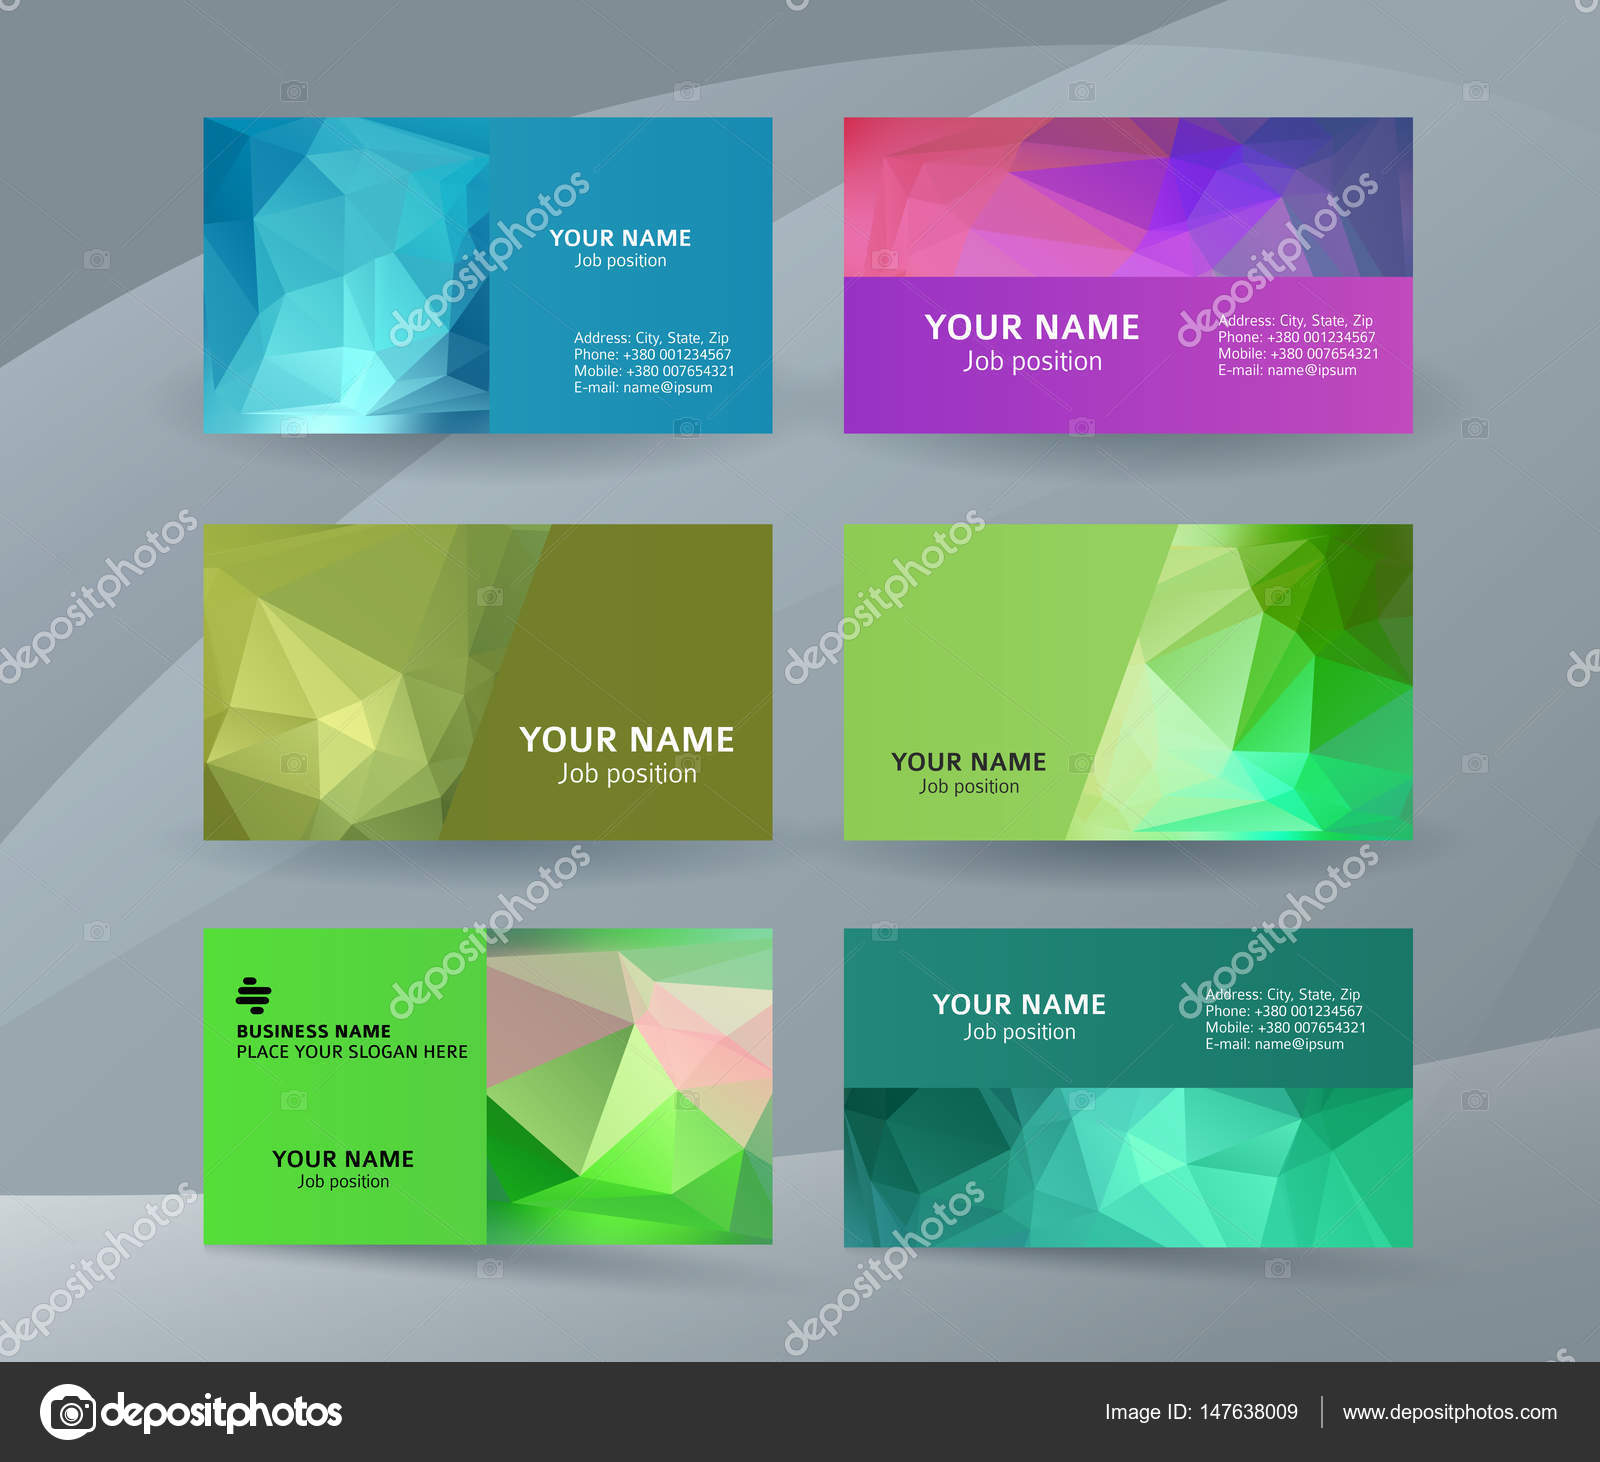 Abstract Professional And Designer Business Card One Sided Template Or Clear Minimal Visiting Set Name Colors Background